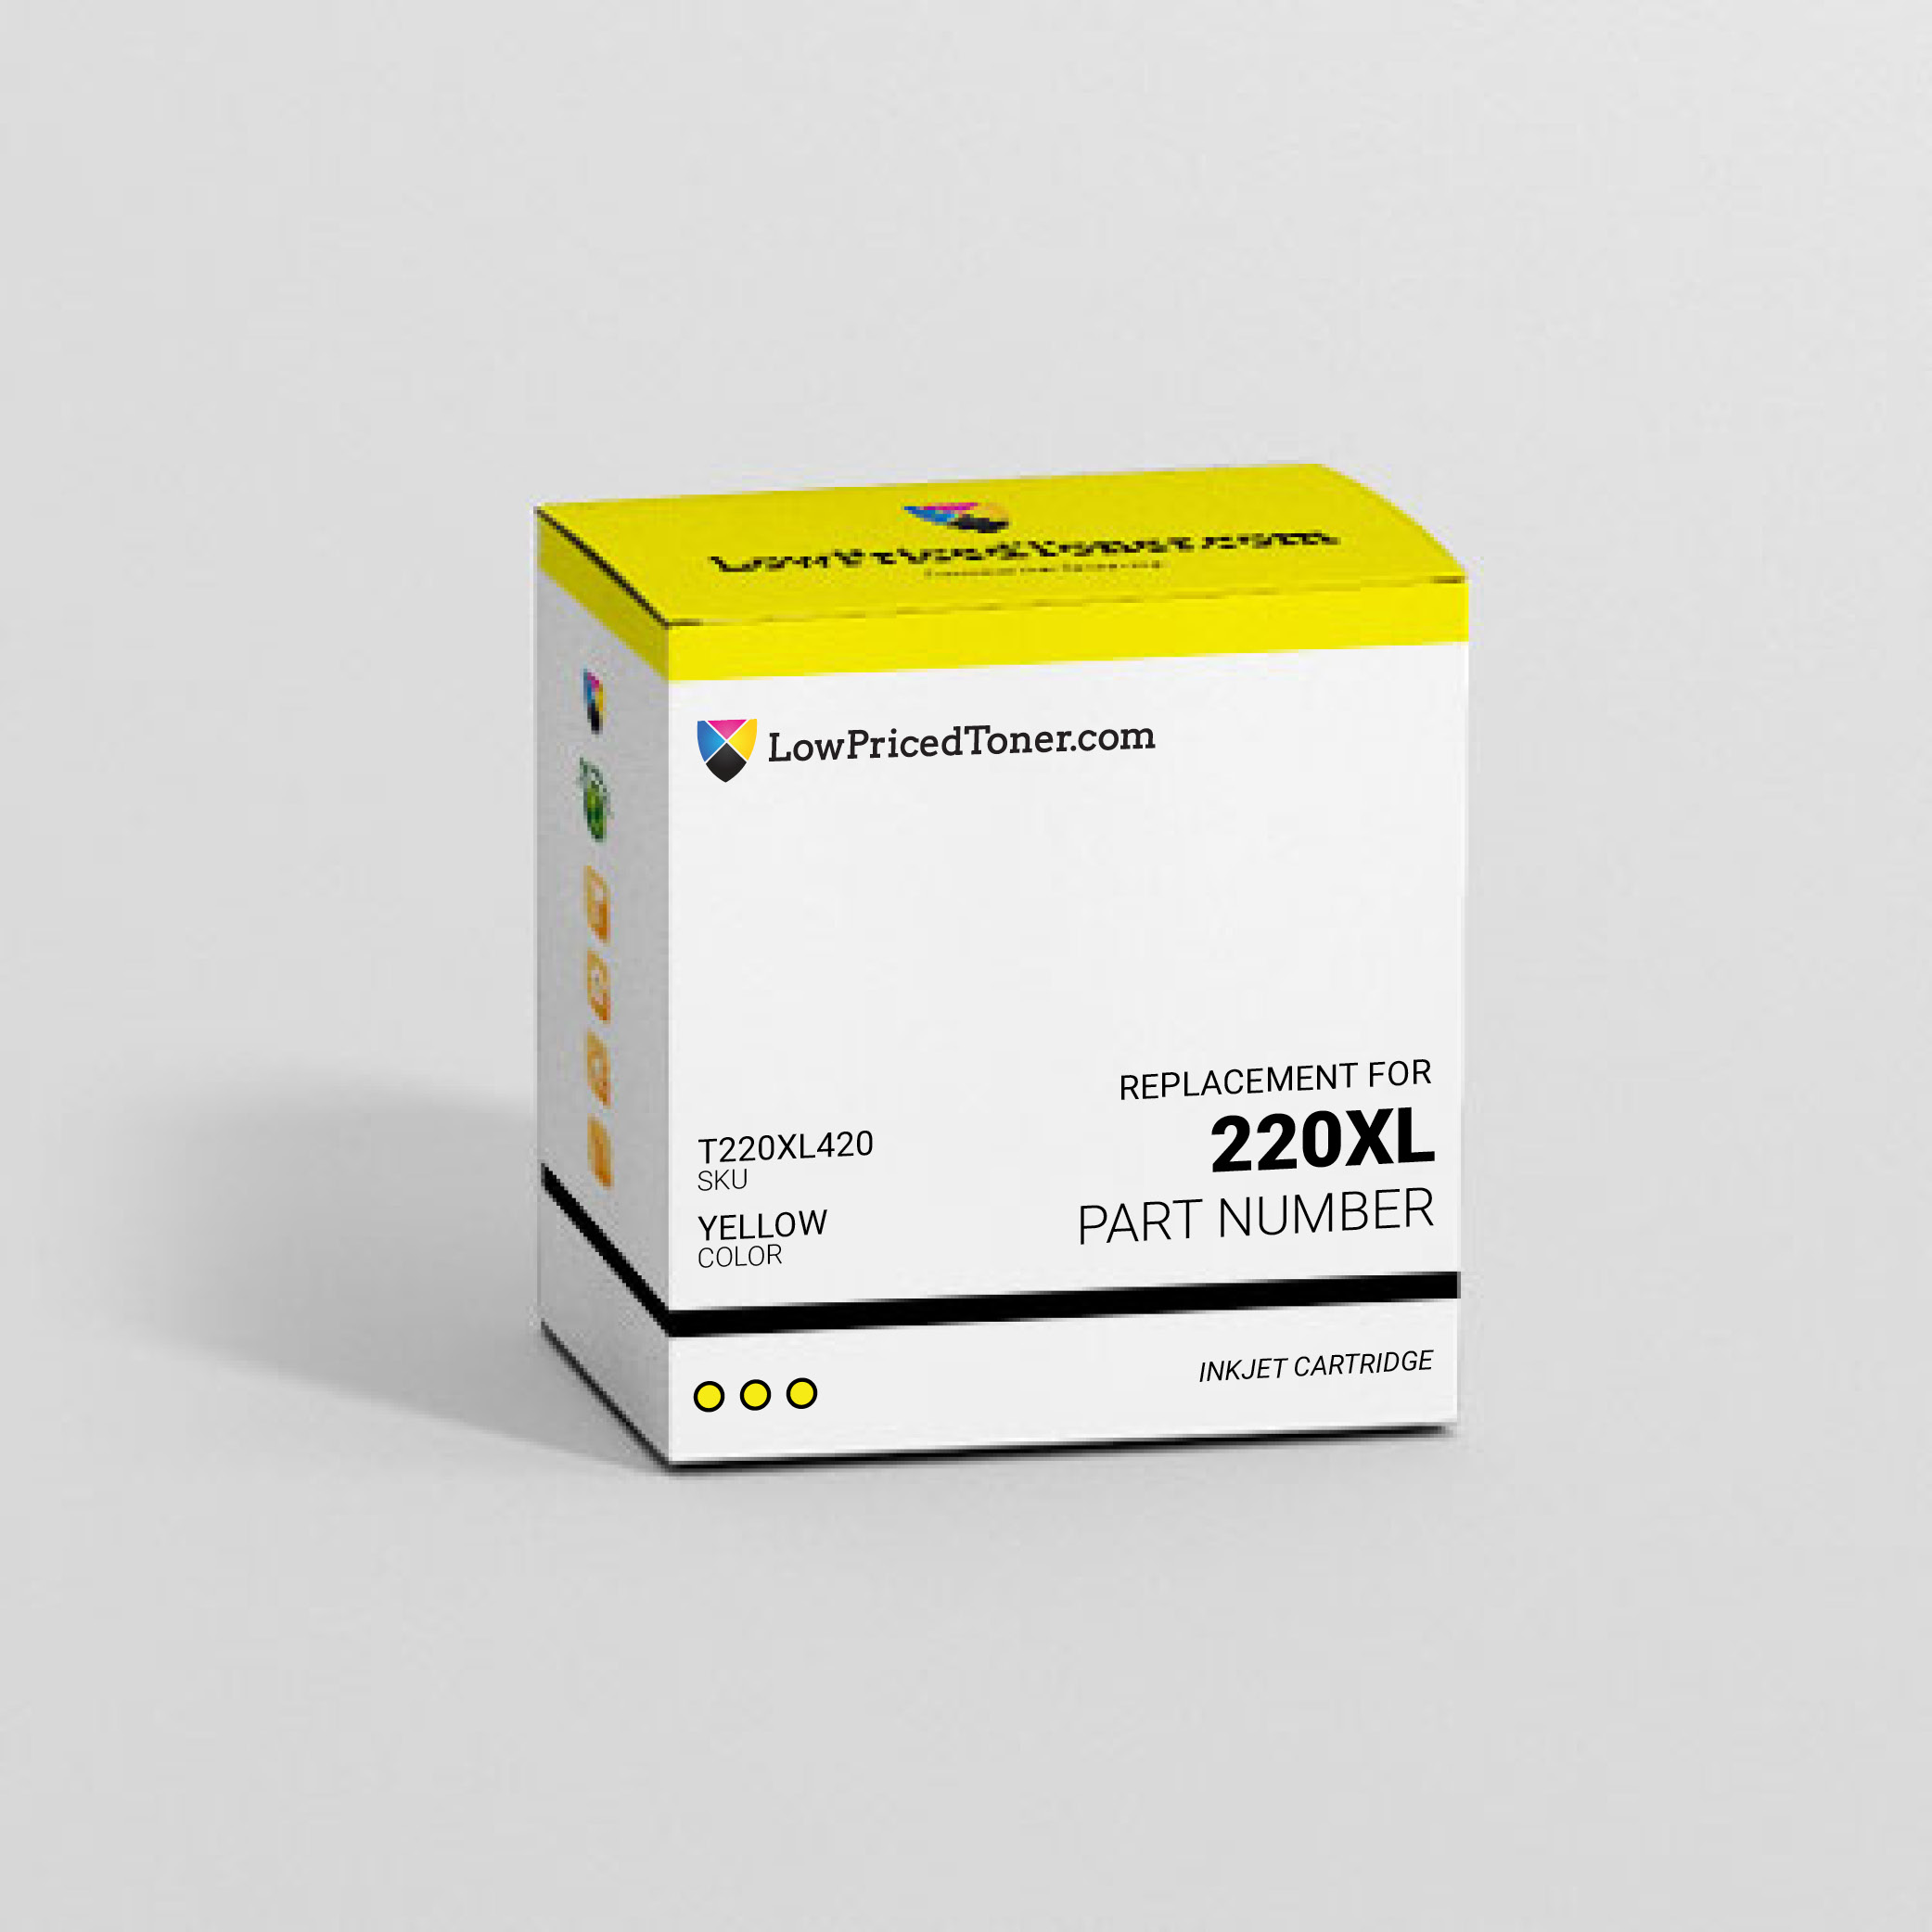 Epson T220XL420 220XL Remanufactured Yellow Ink Cartridge High Yield